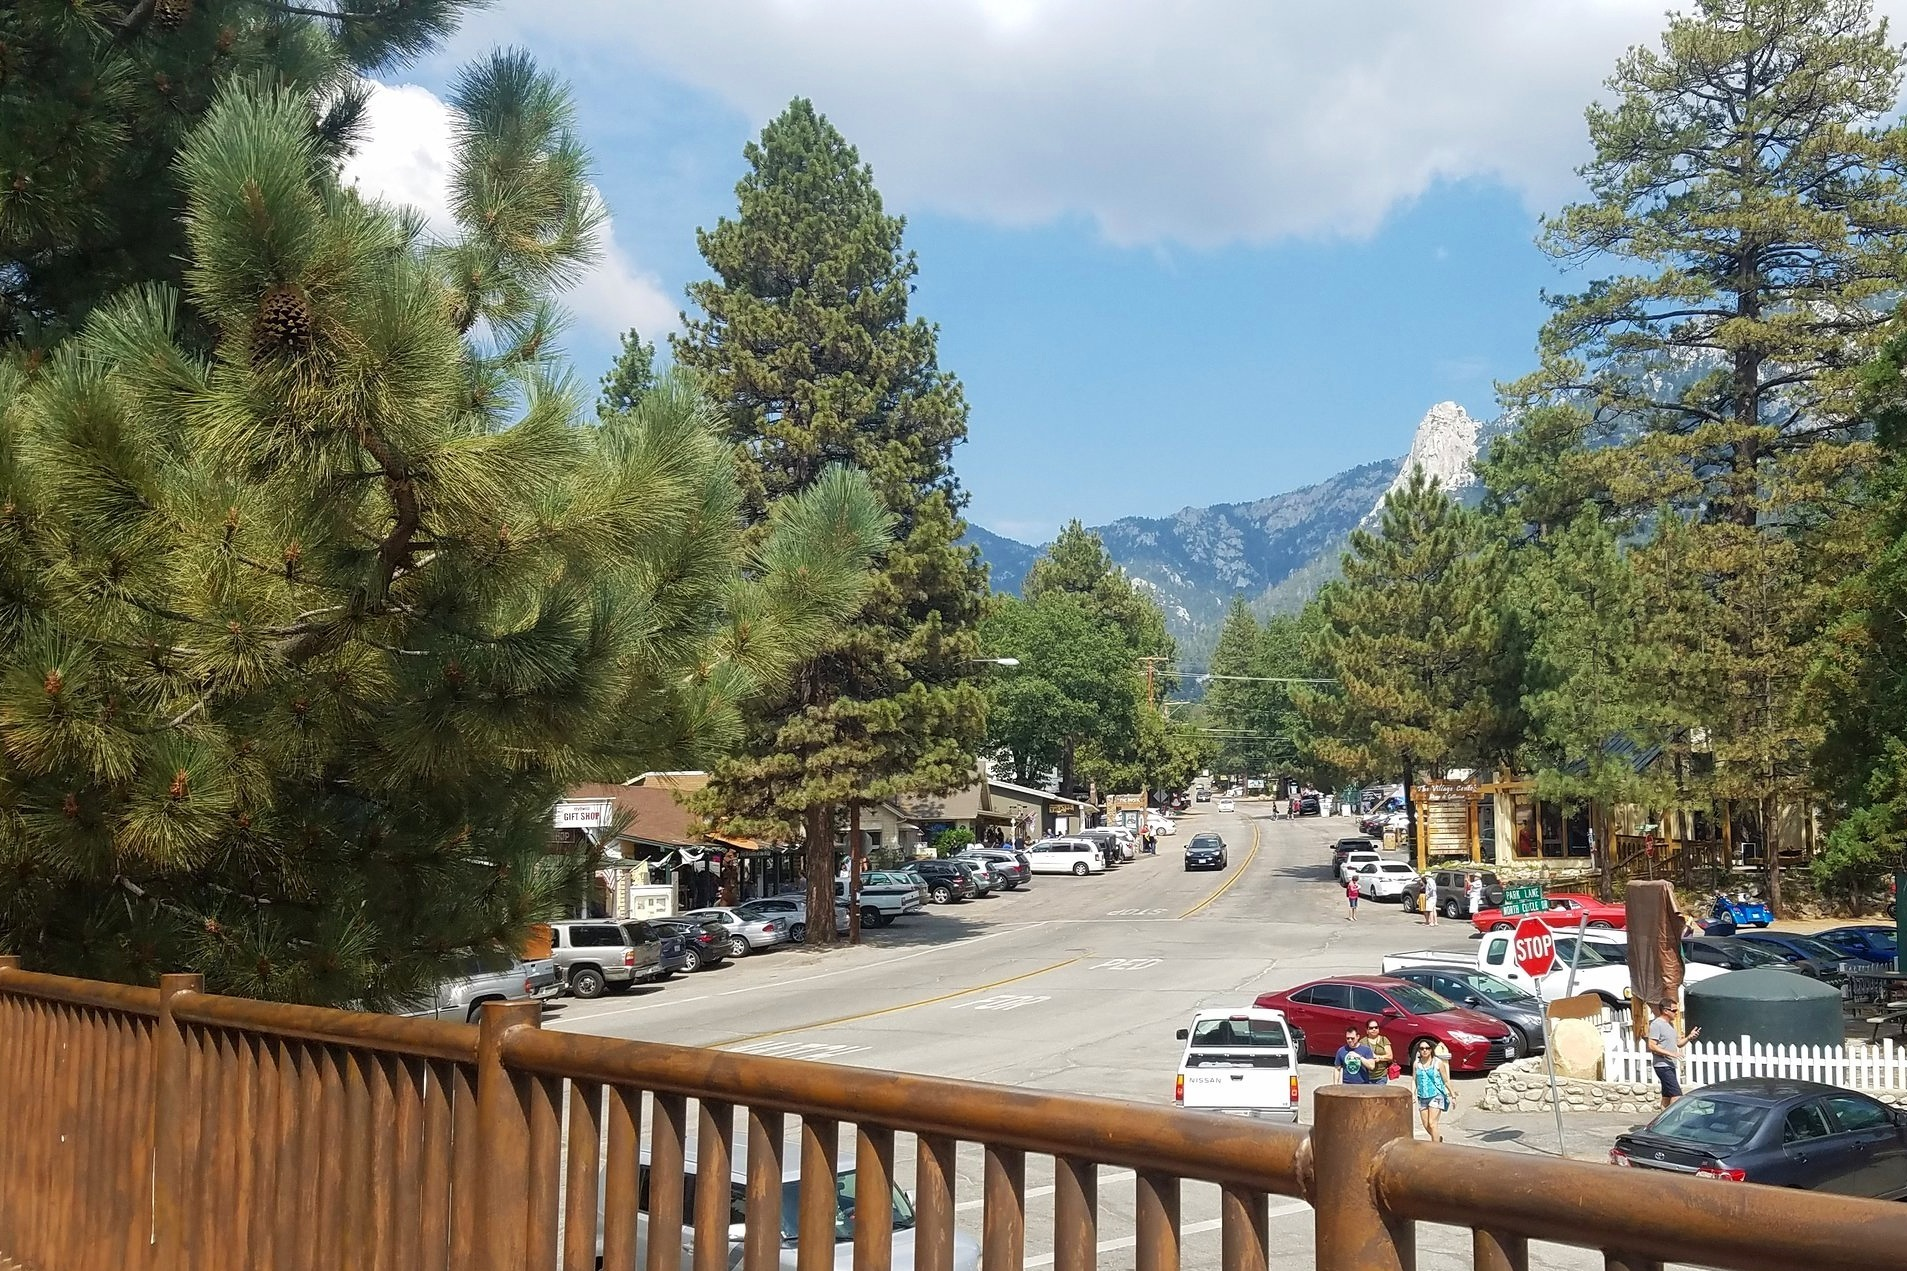 Main street through Idyllwild.